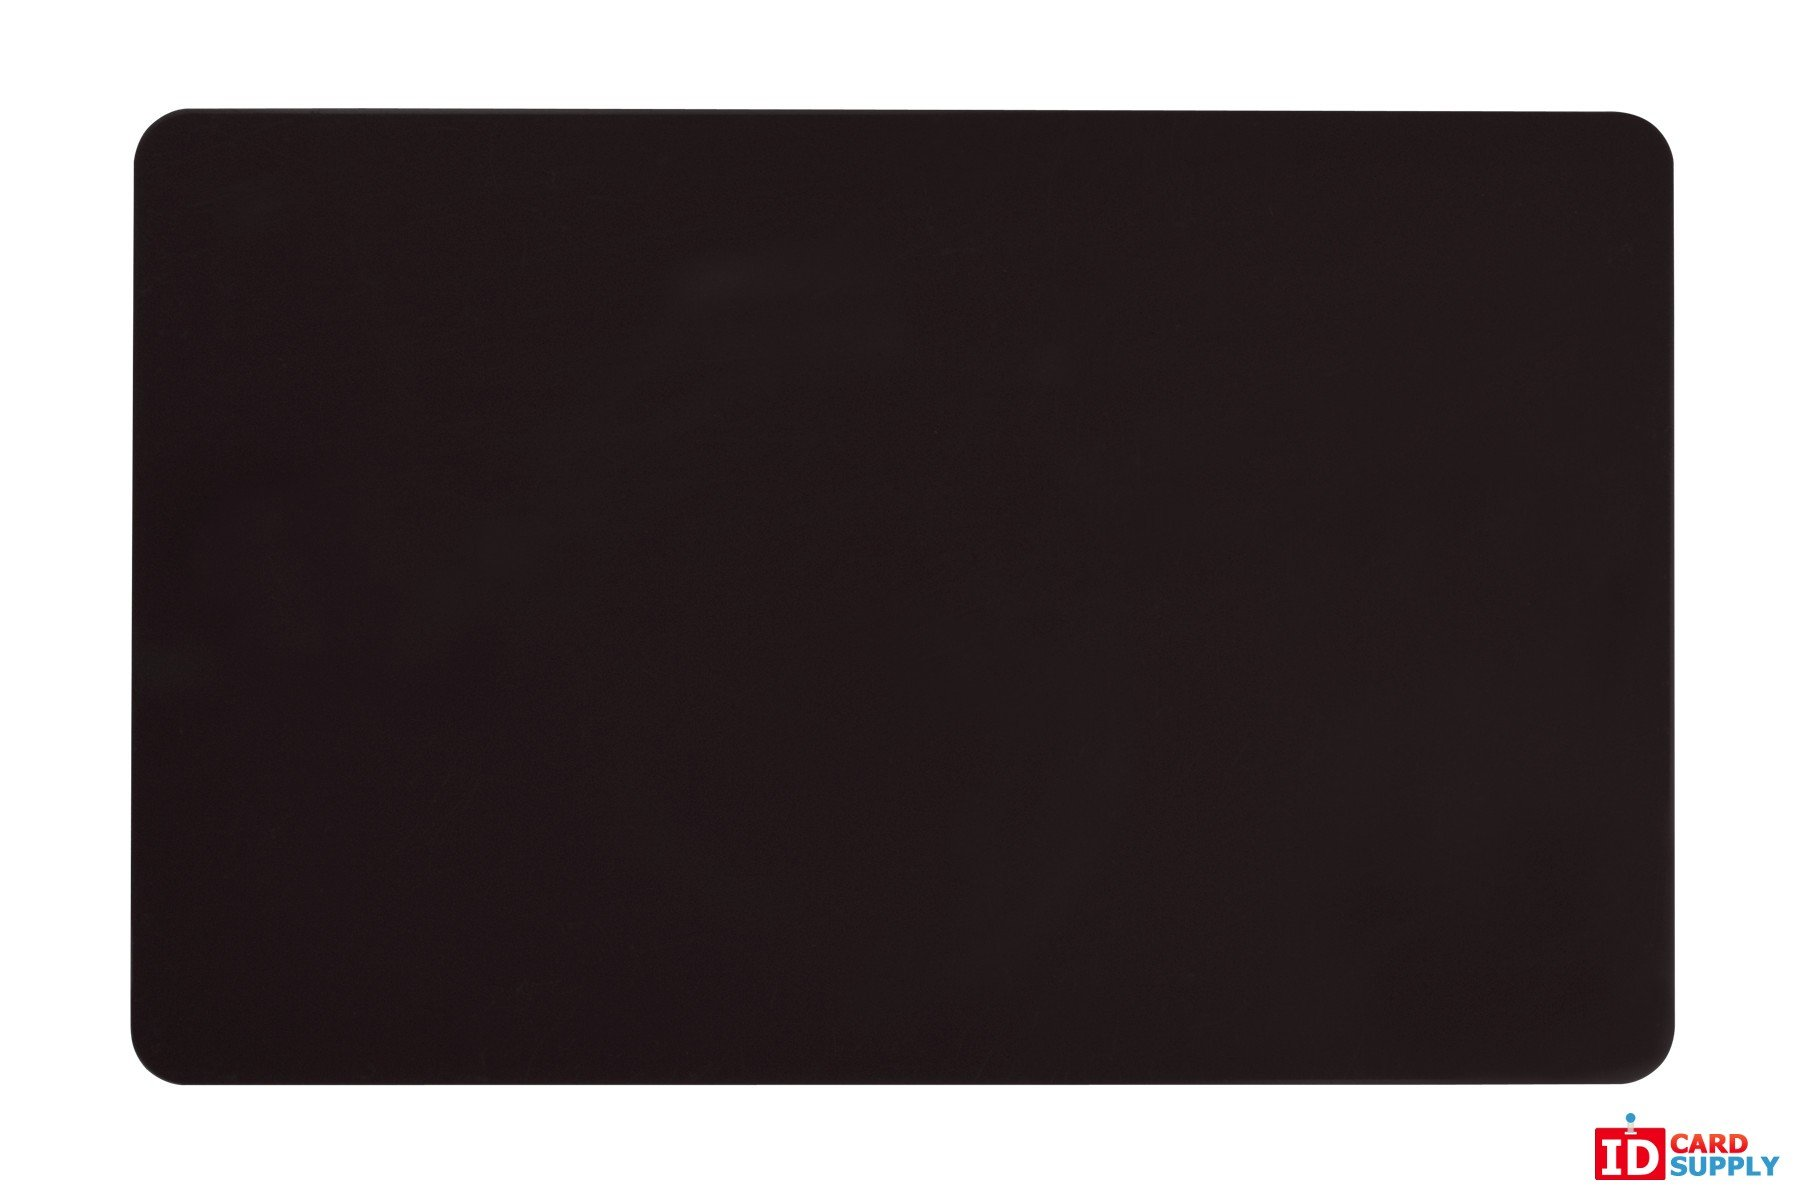 Pack of 100 Black CR80 PVC Cards   30 mil by easyIDea